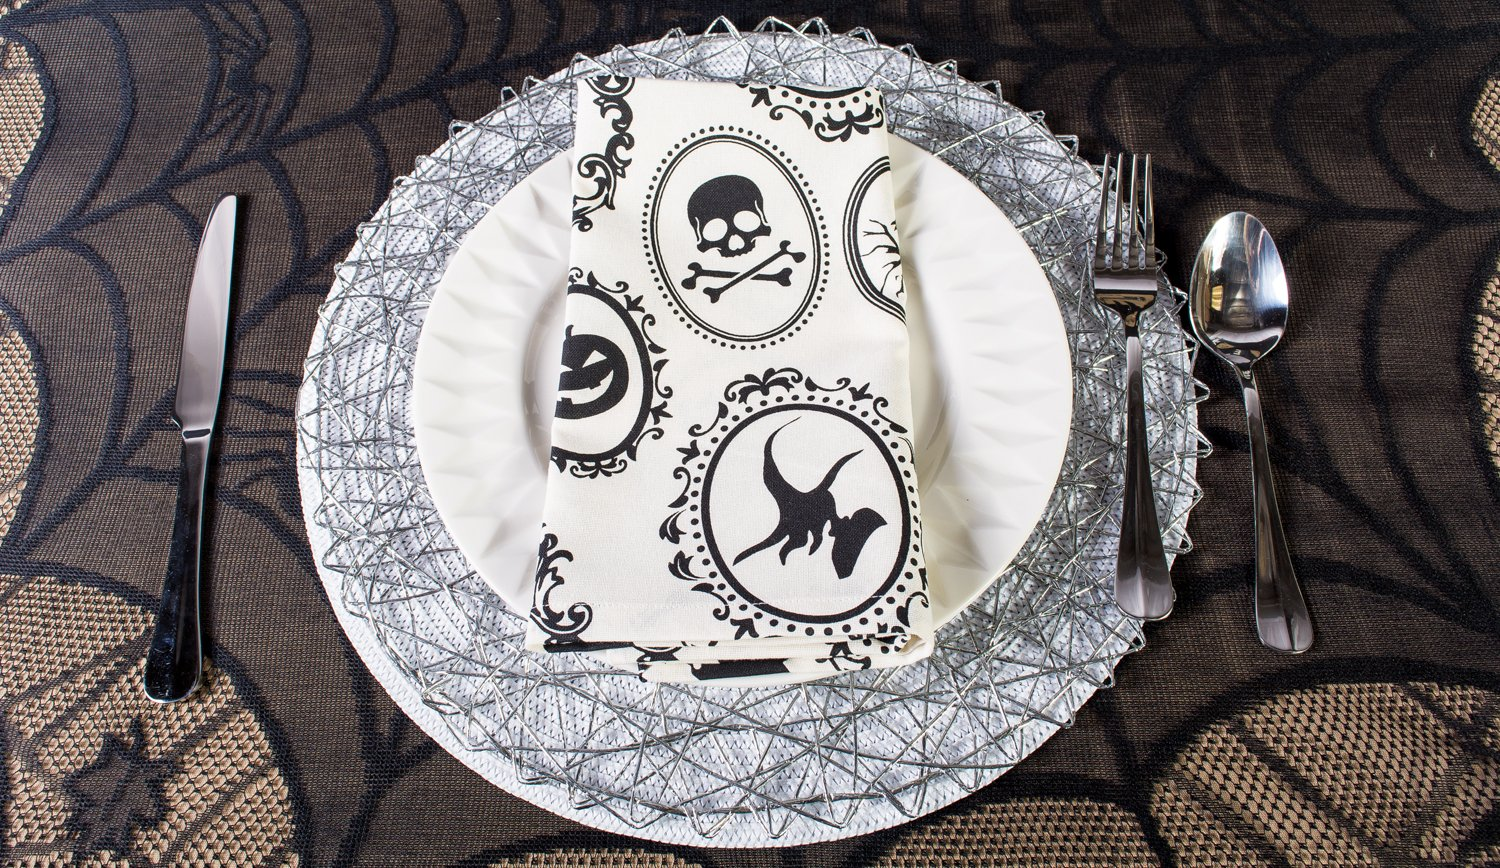 DII Oversized 20x20'' Cotton Napkin, Black & White Halloween Portrait - Perfect for Halloween, Dinner Parties and Scary Movie Nights by DII (Image #9)